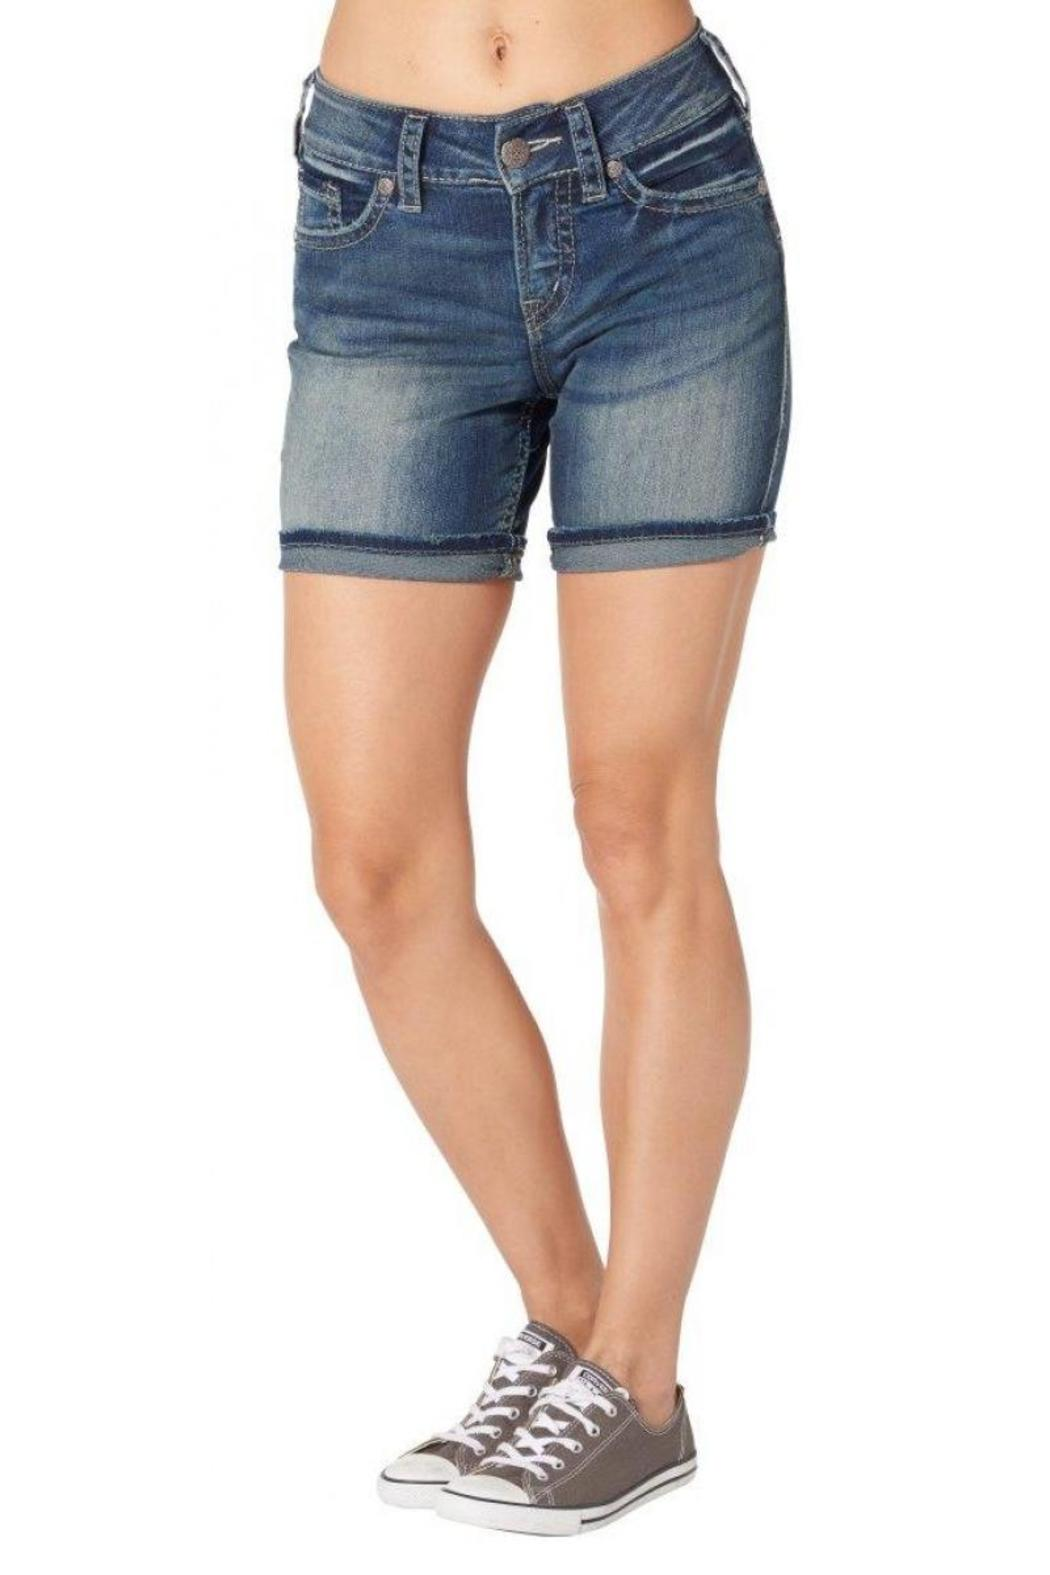 Silver Jeans Co. Suki Mid-Thigh Shorts - Front Full Image